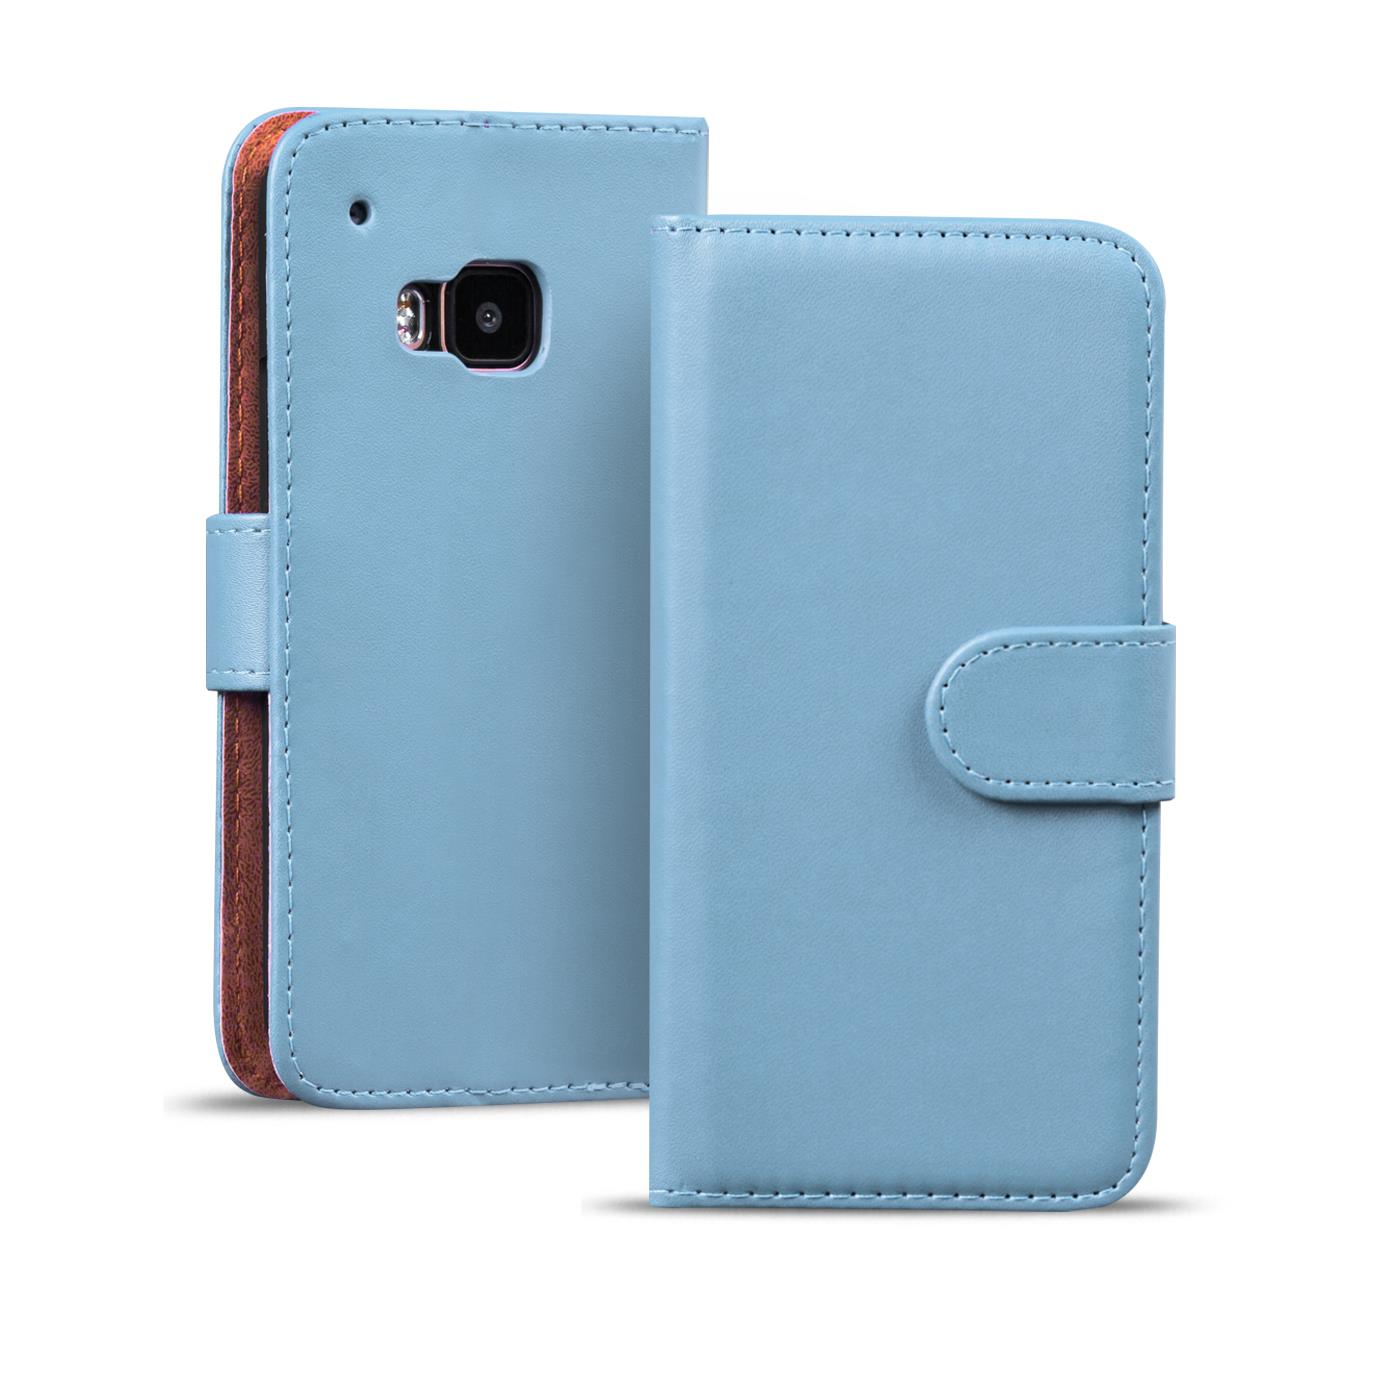 handy tasche f r htc modelle flip cover case schutz h lle etui schale wallet ebay. Black Bedroom Furniture Sets. Home Design Ideas